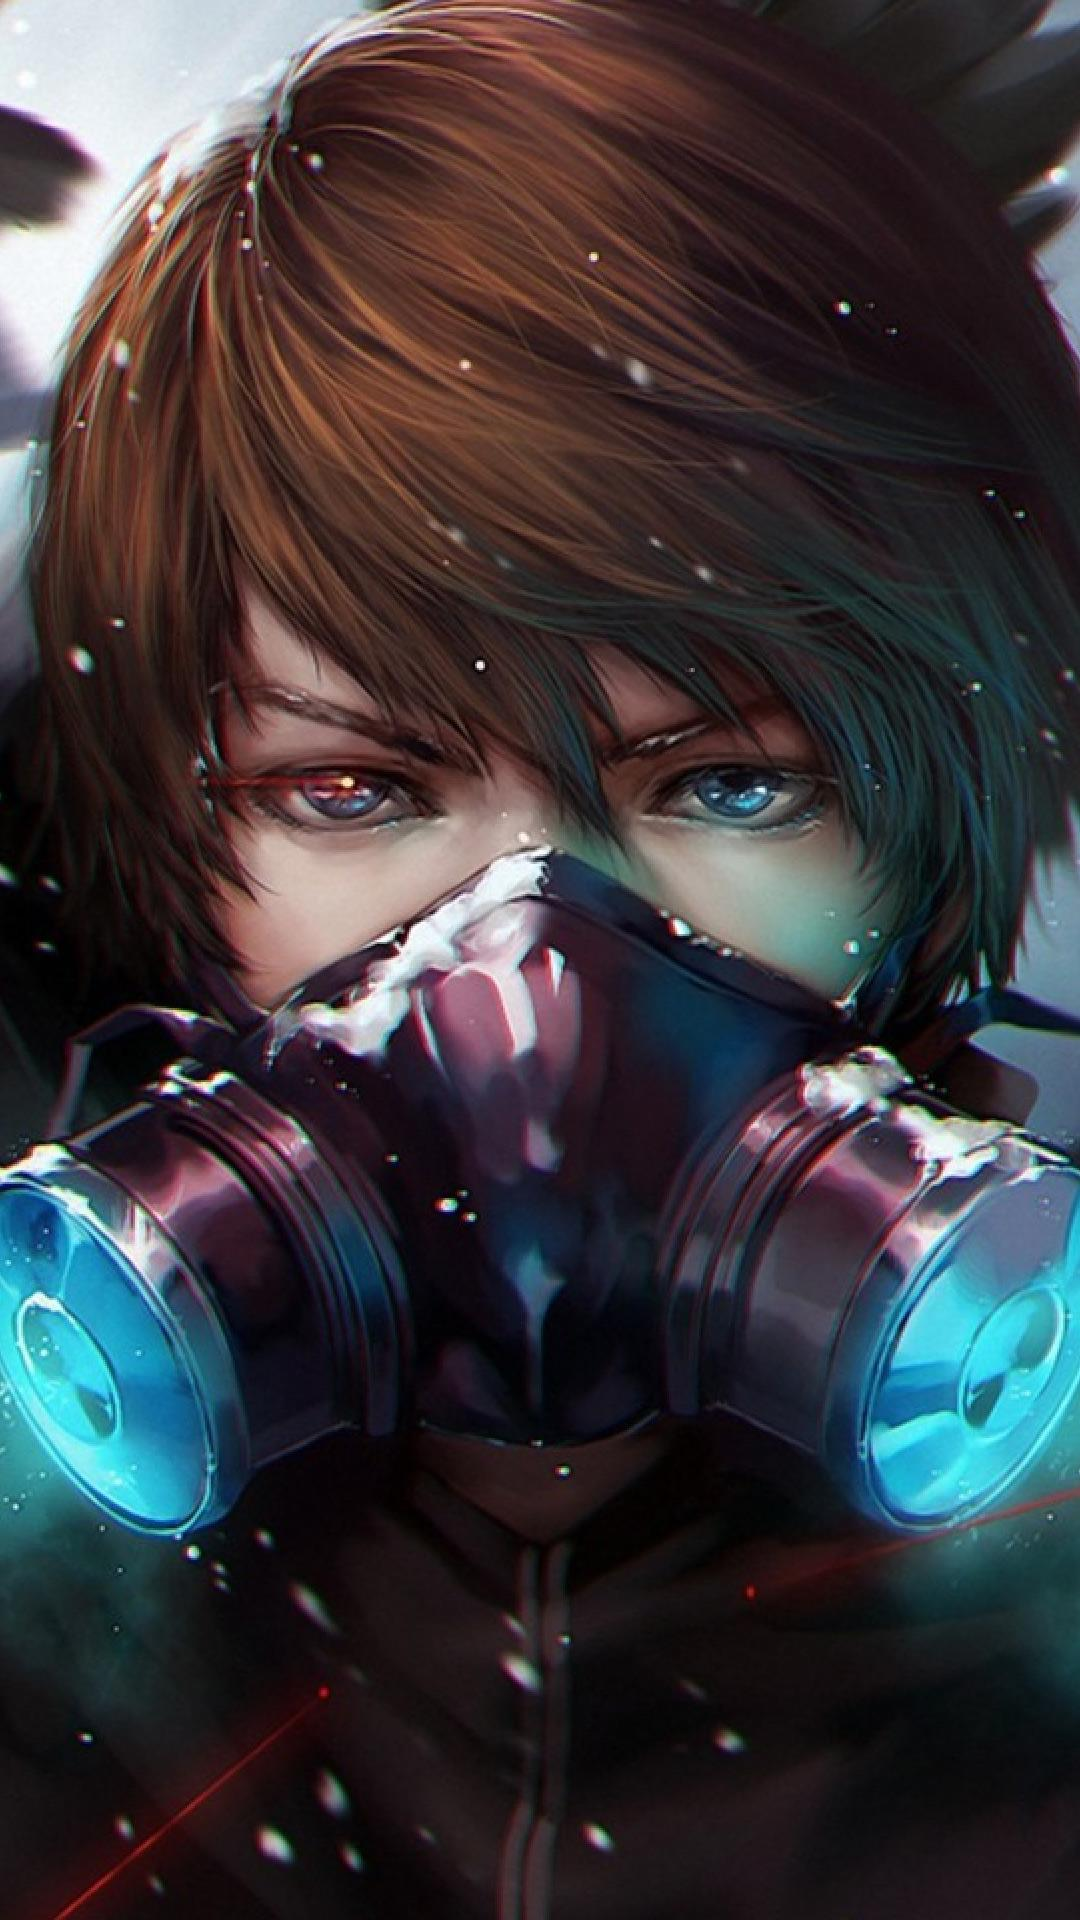 Anime Boy Mask Wallpapers - Wallpaper Cave